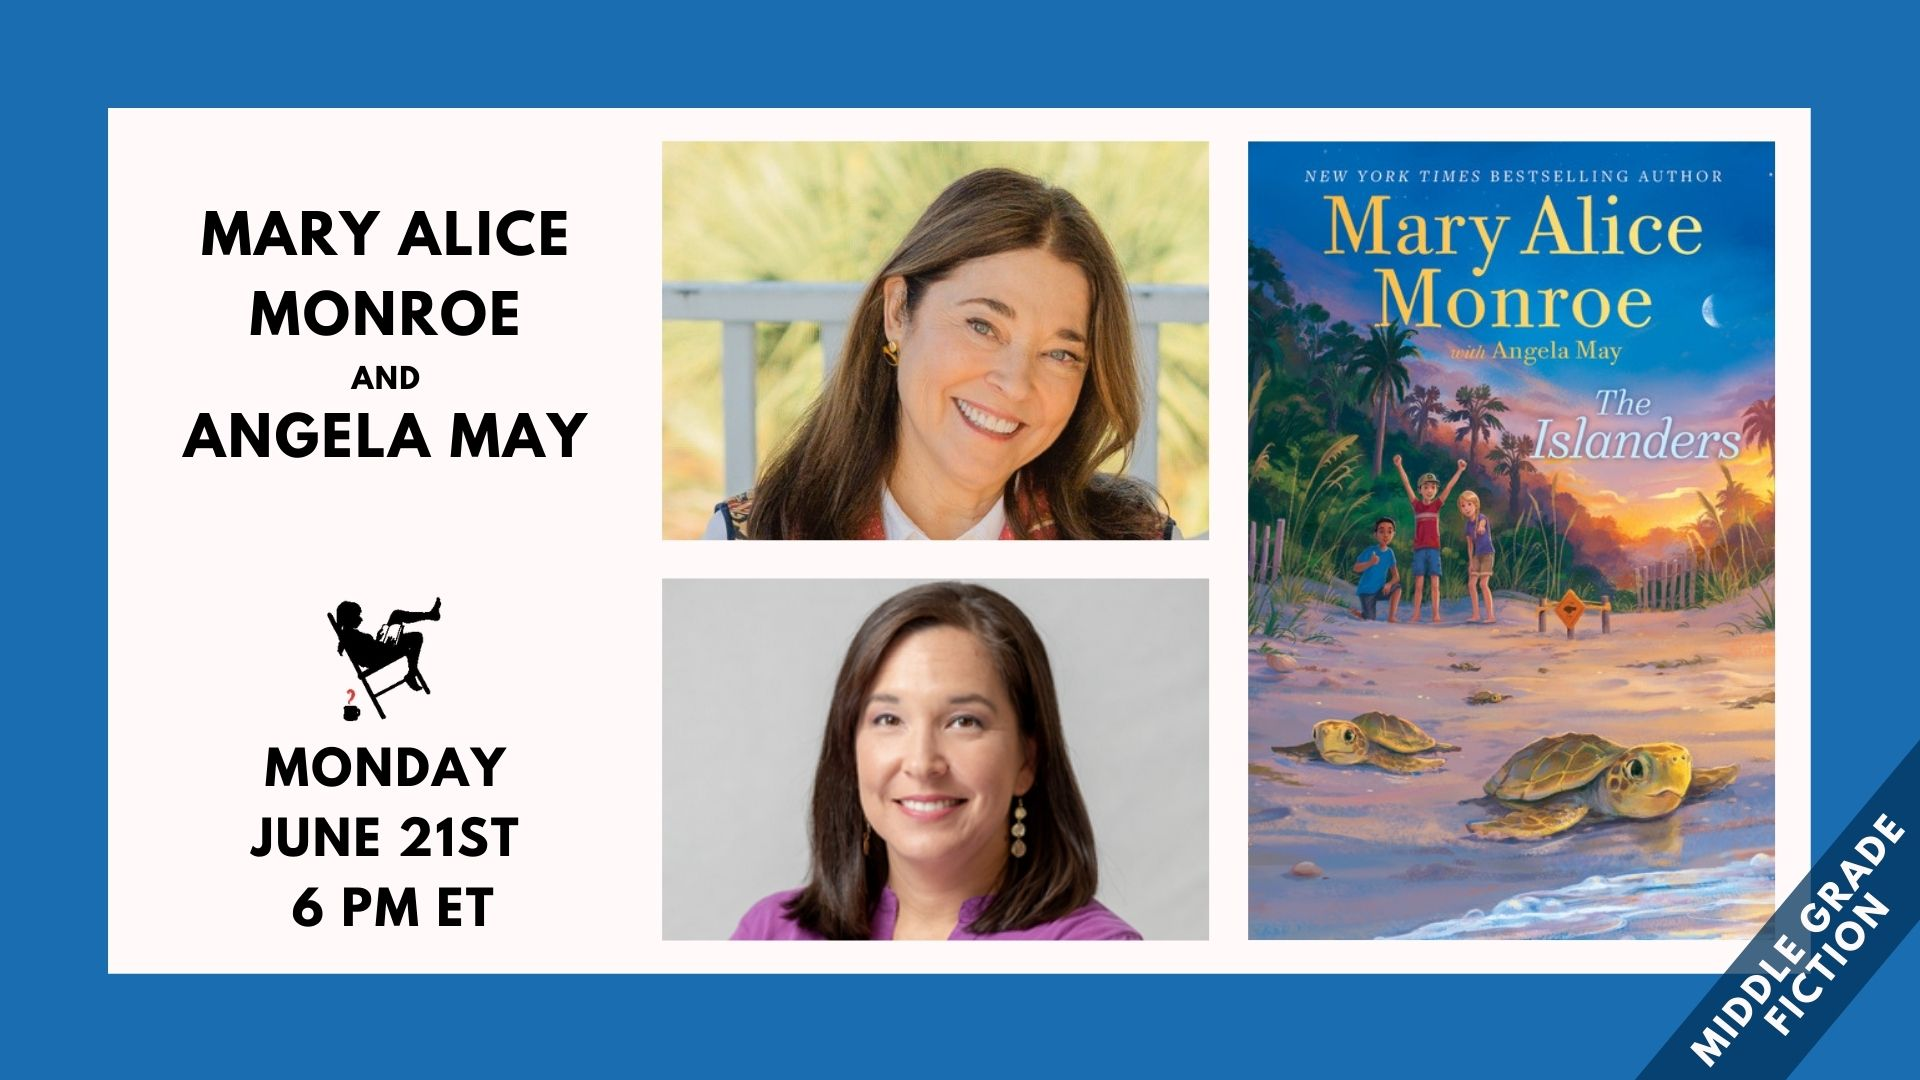 Image shows the faces of Mary Alice Monroe and Angela May, the cover of the book The Exiles, and the event date Monday, June 21st, 6 PM ET